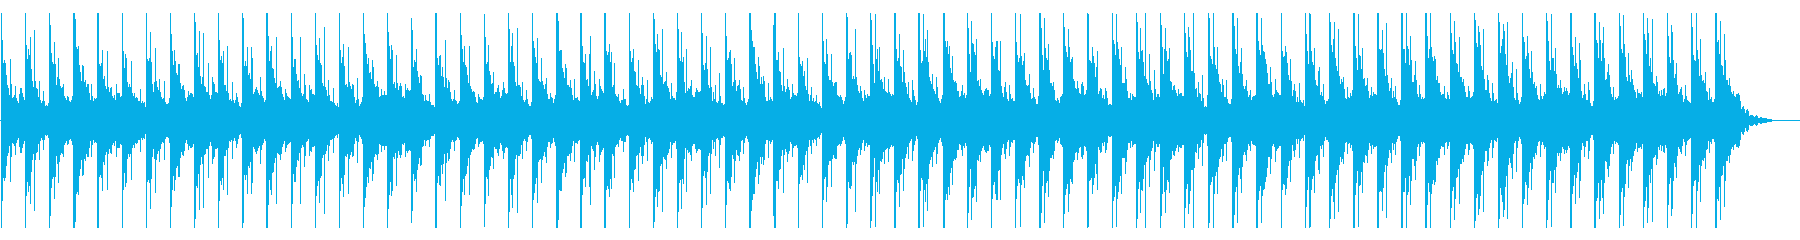 [Without Percus] BGM for news commentary's reproduced waveform